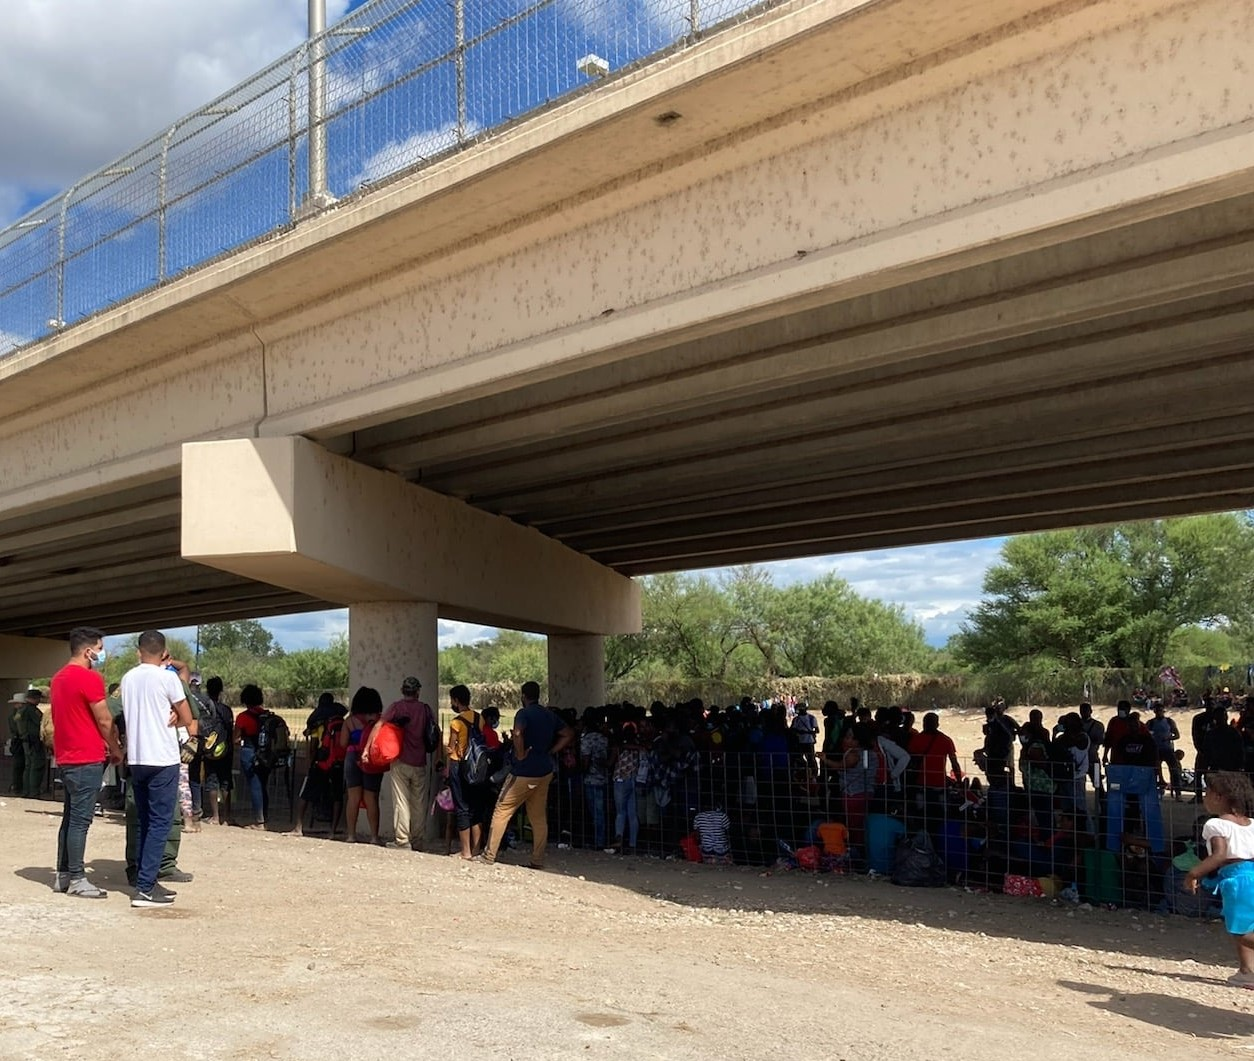 Thousands of migrants, mostly Haitian, Cubans, and Venezuelans have arrived in Del Rio, Texas, in the last two days. (U.S. Rep. Tony Gonzales, R-Texas)